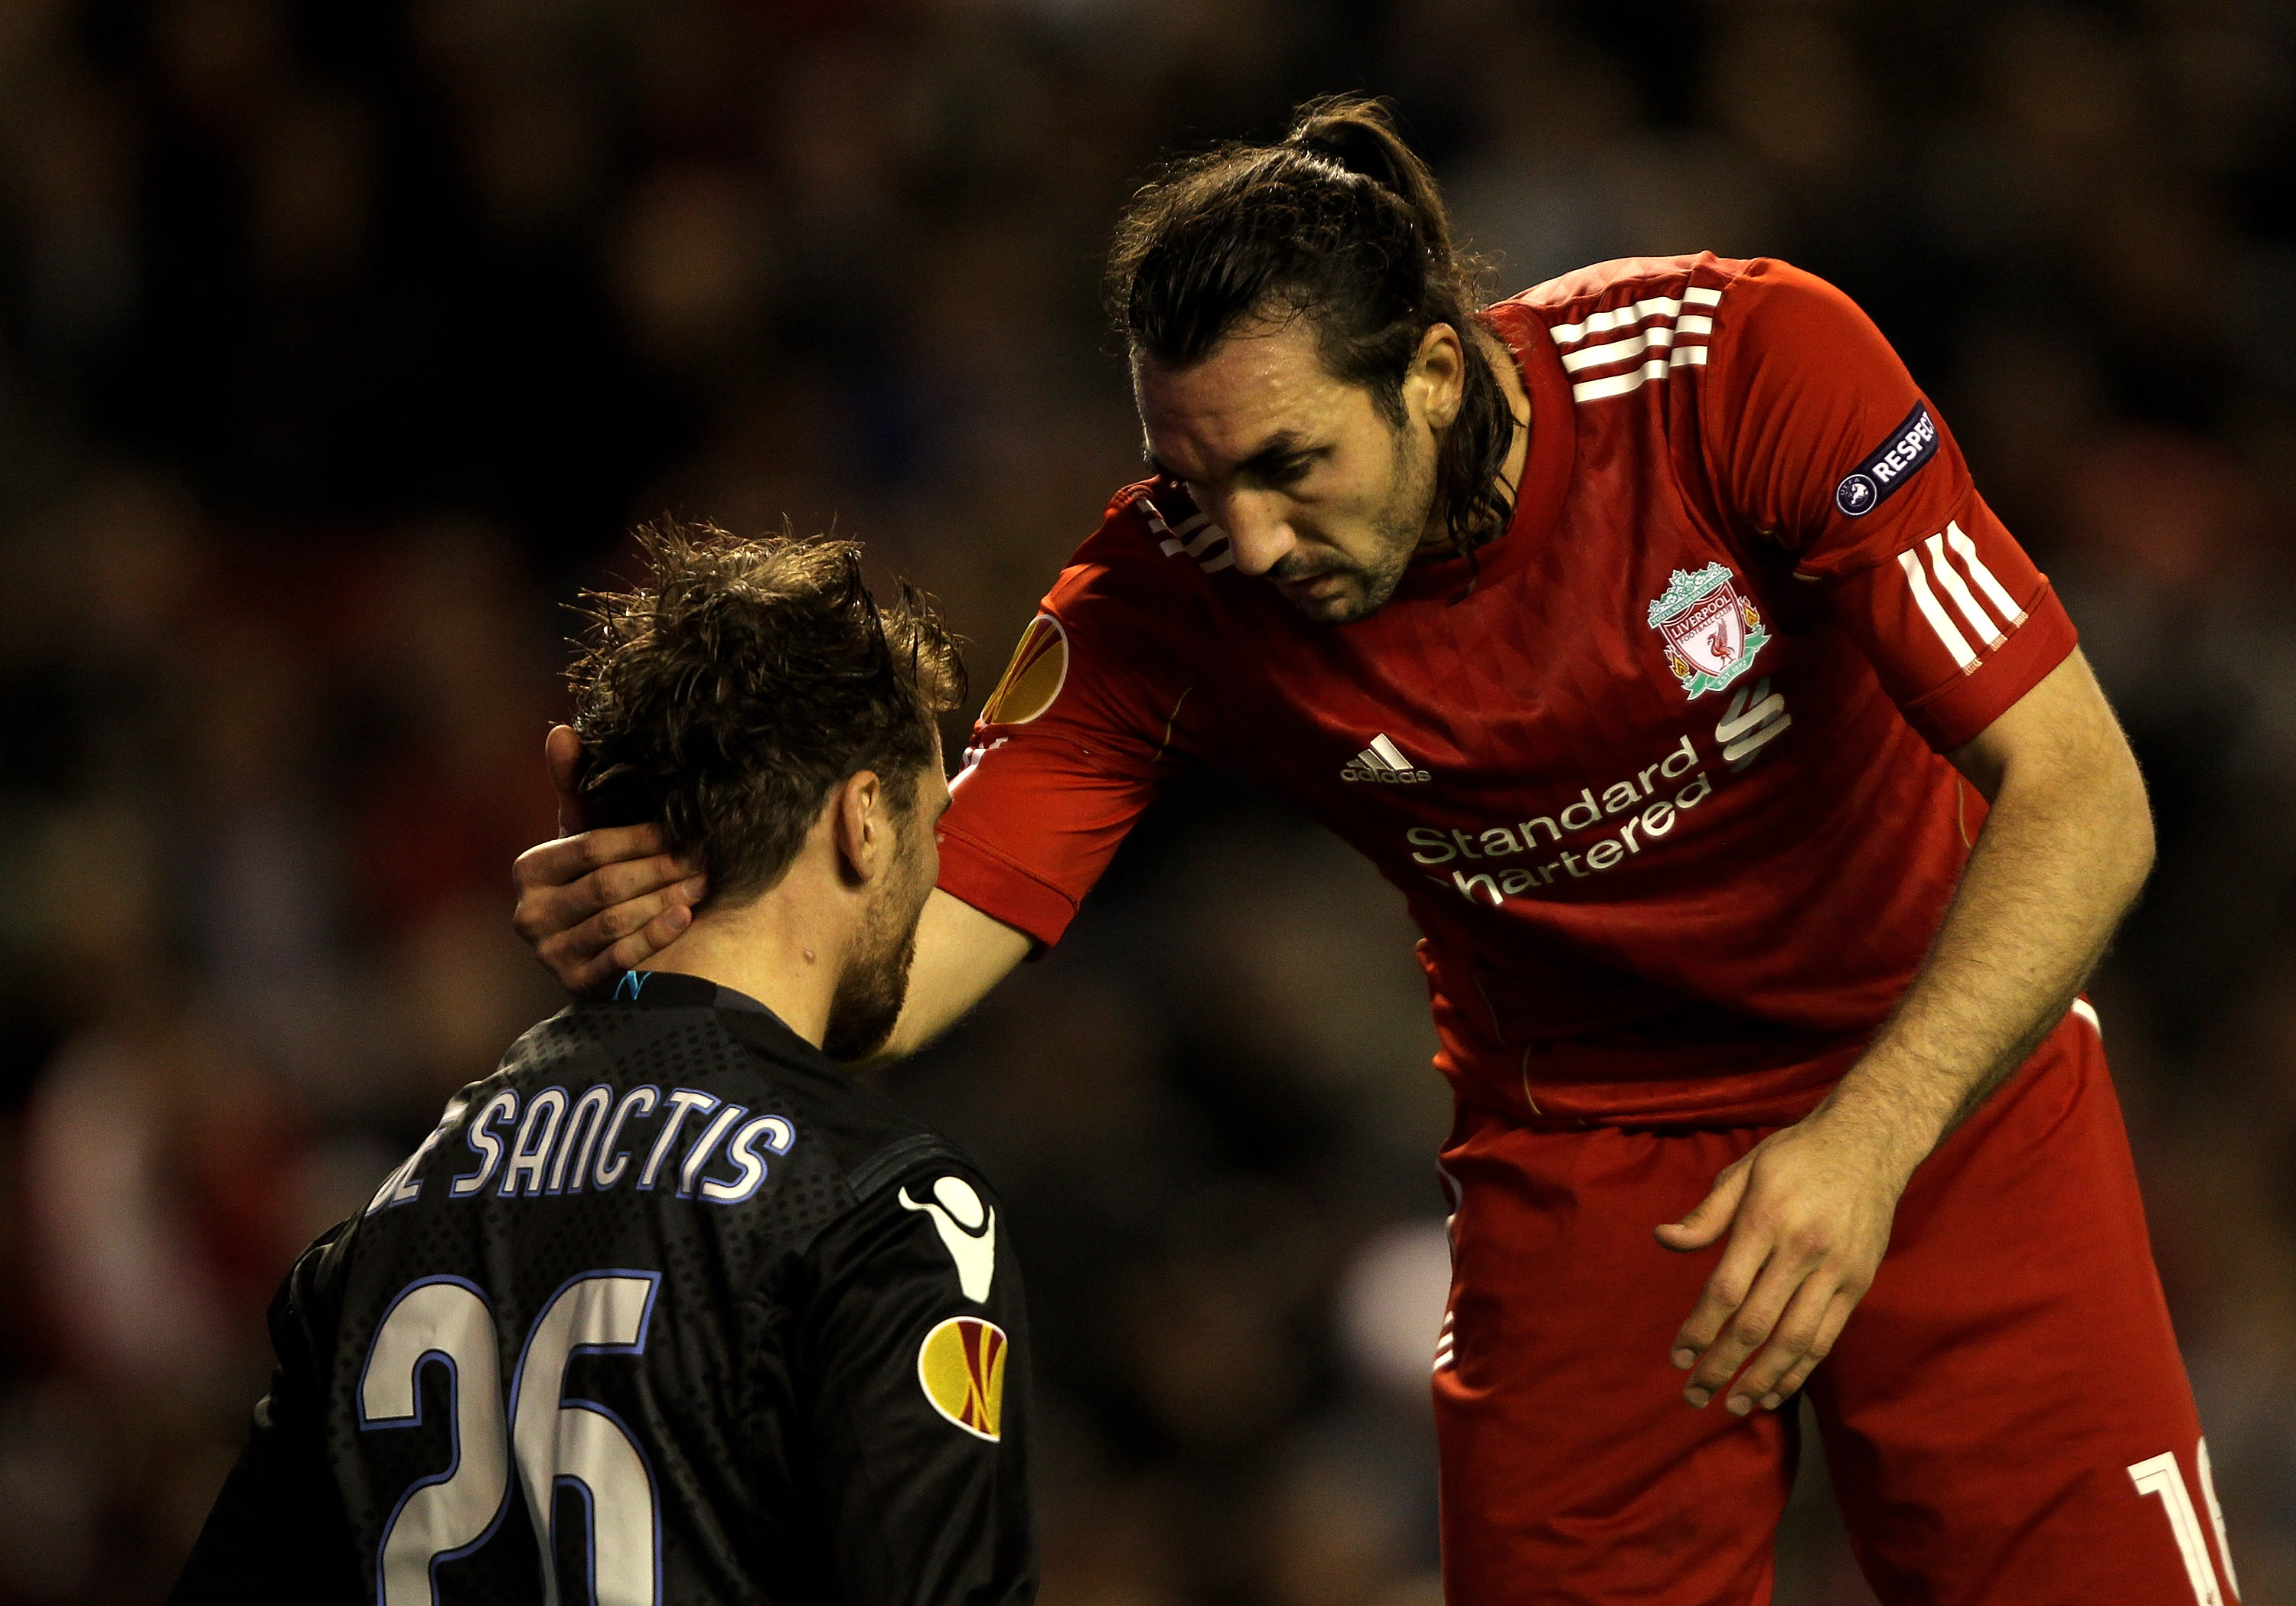 LIVERPOOL, ENGLAND - NOVEMBER 04:   Morgan De Sanctis of Napoli is consoled by Sotiros Kyrgiakos of Liverpool during the UEFA Europa League Group K match beteween Liverpool and SSC Napoli at Anfield on November 4, 2010 in Liverpool, England.  (Photo by Cl